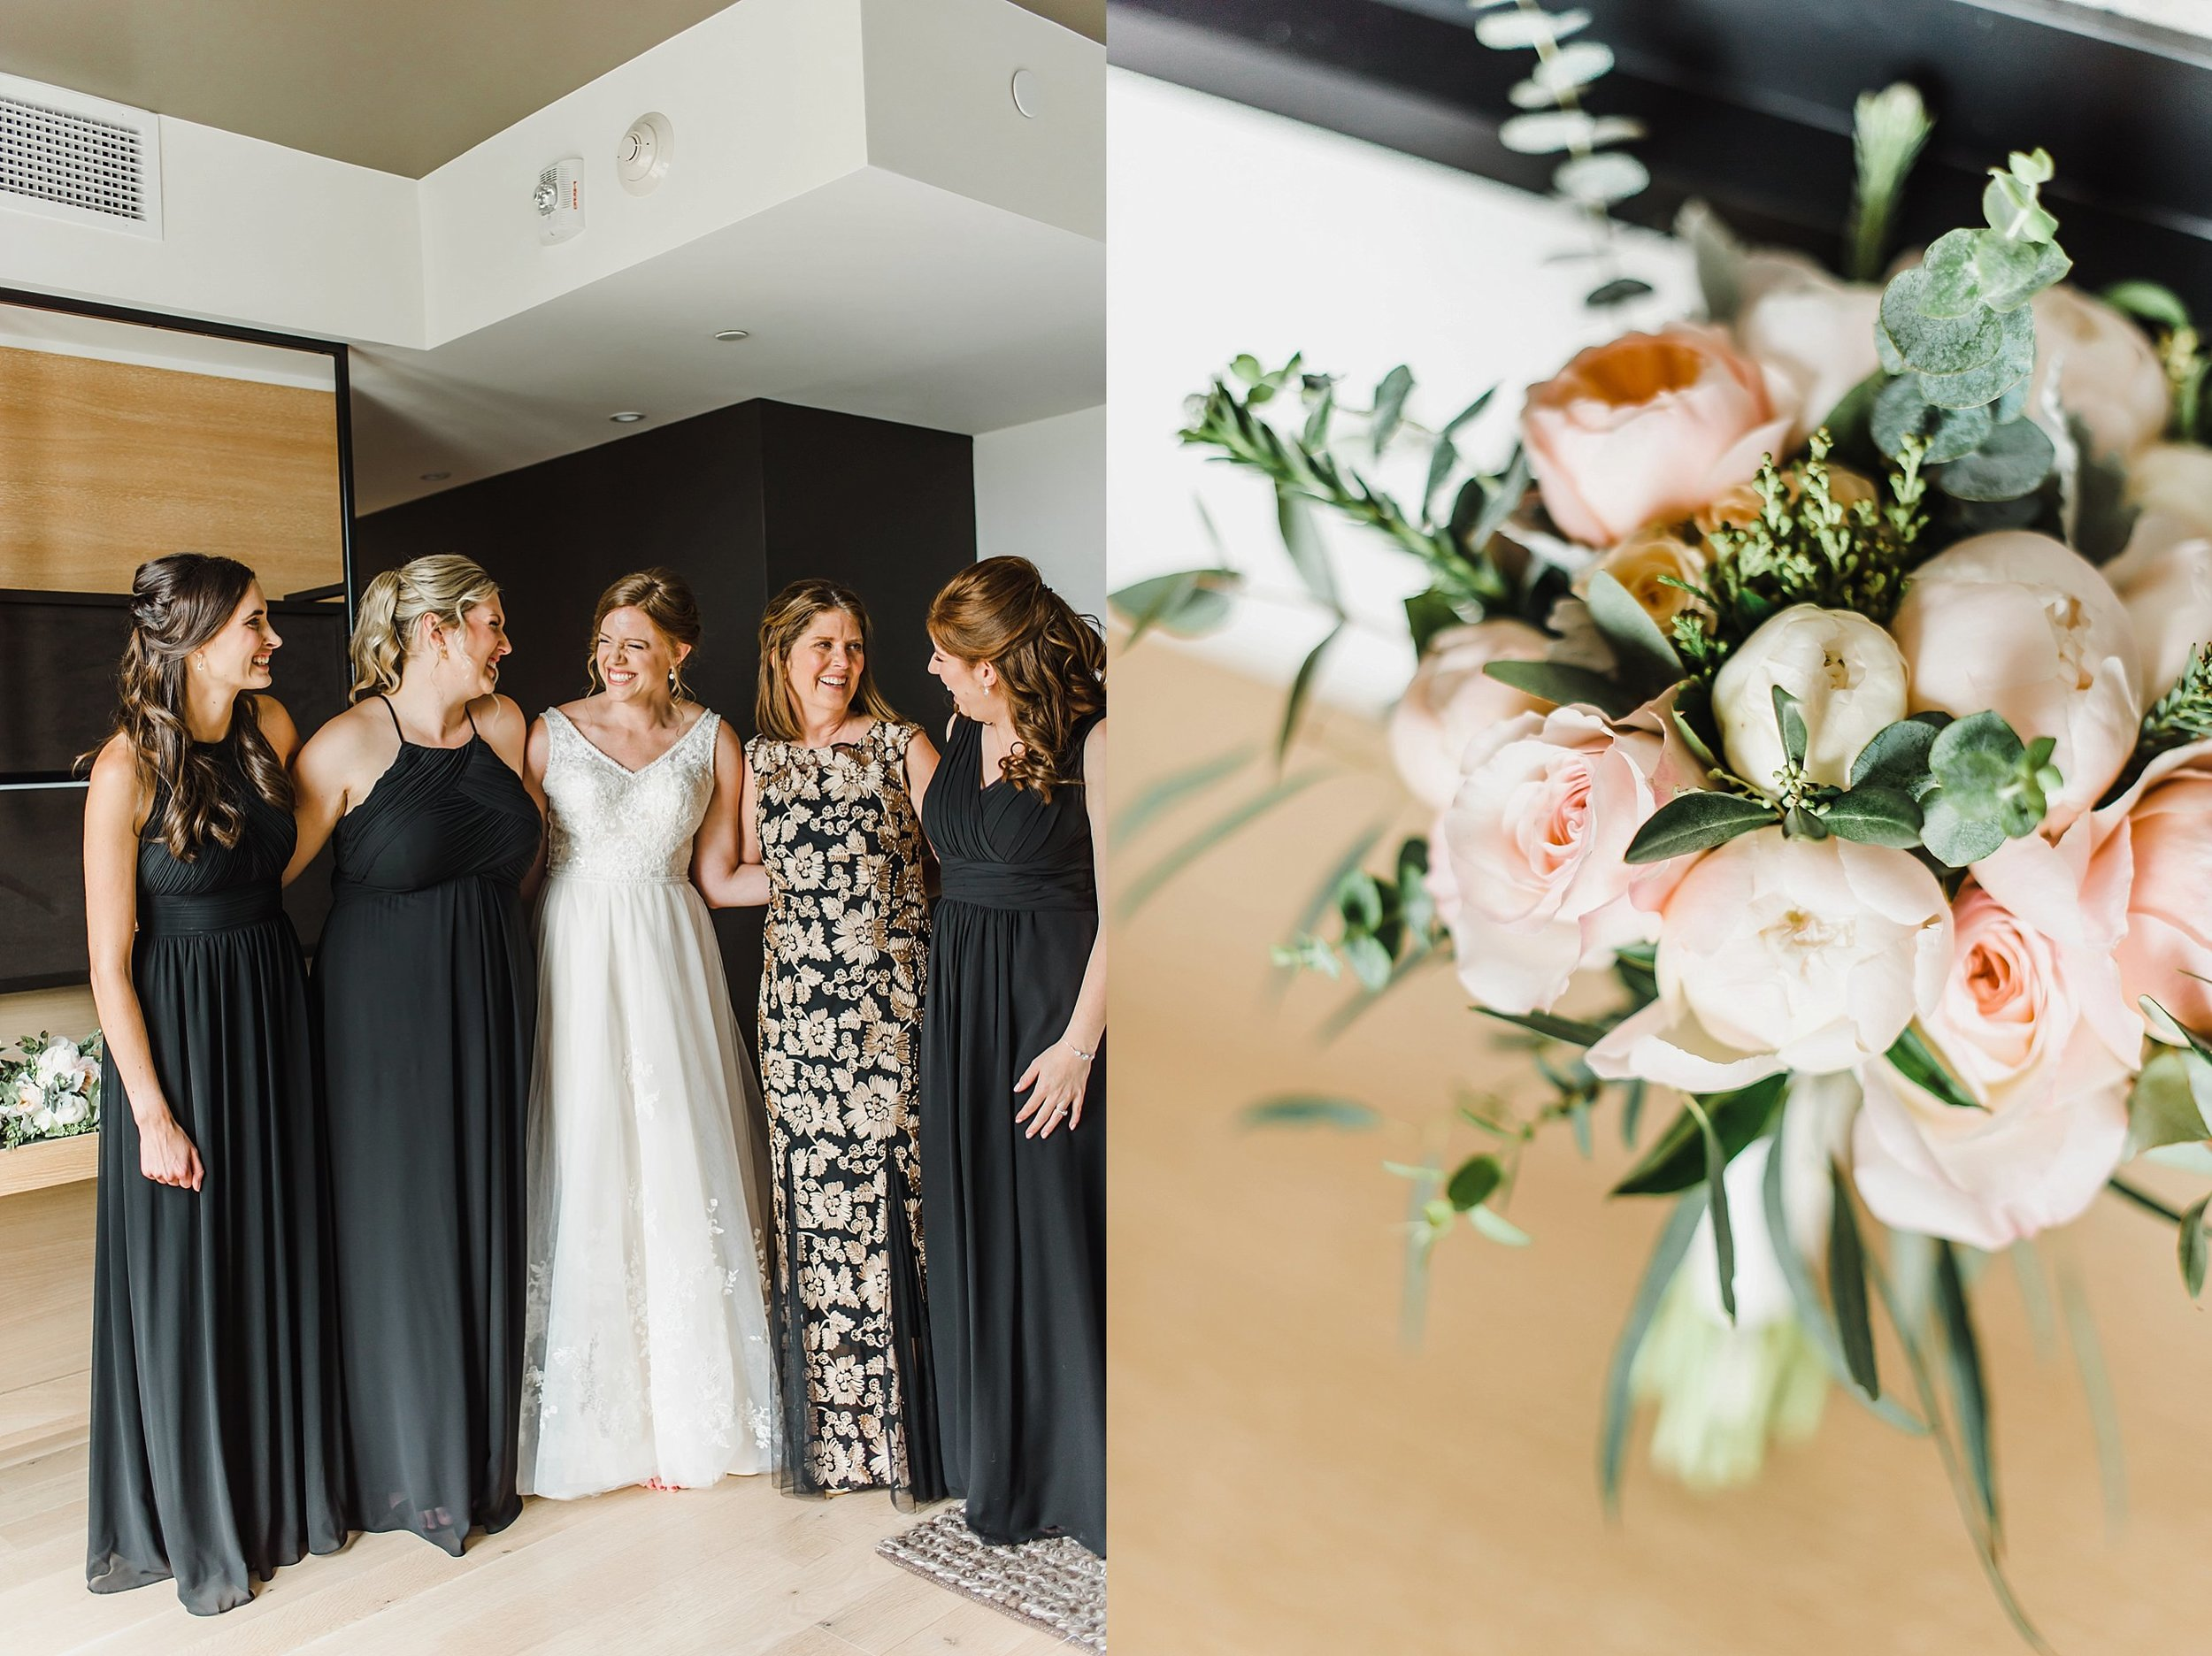 light airy indie fine art ottawa wedding photographer | Ali and Batoul Photography_0278.jpg